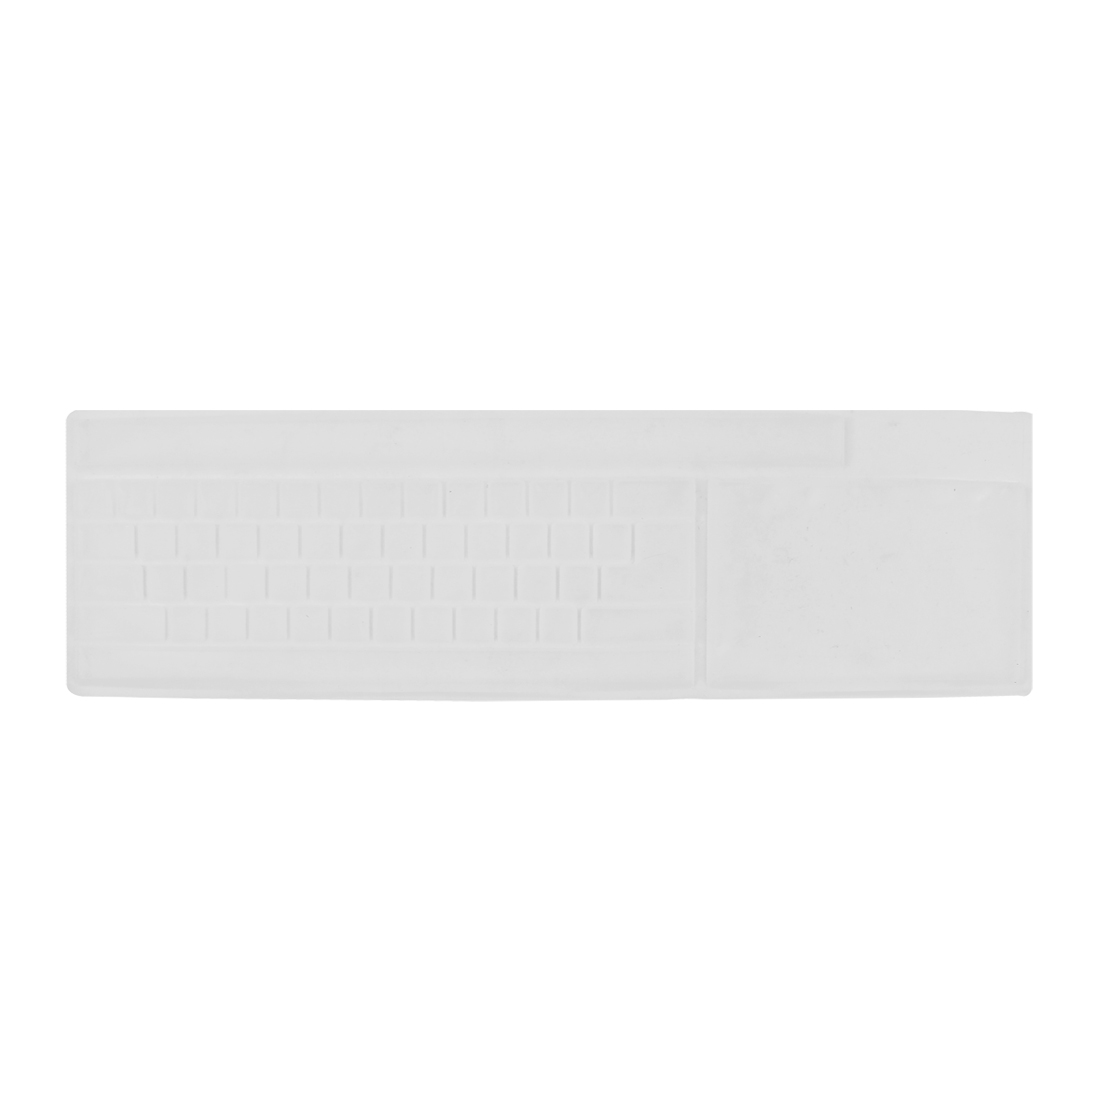 """White Silicone Universal Keyboard Protector Film Cover for 17.7"""" PC Notebook"""